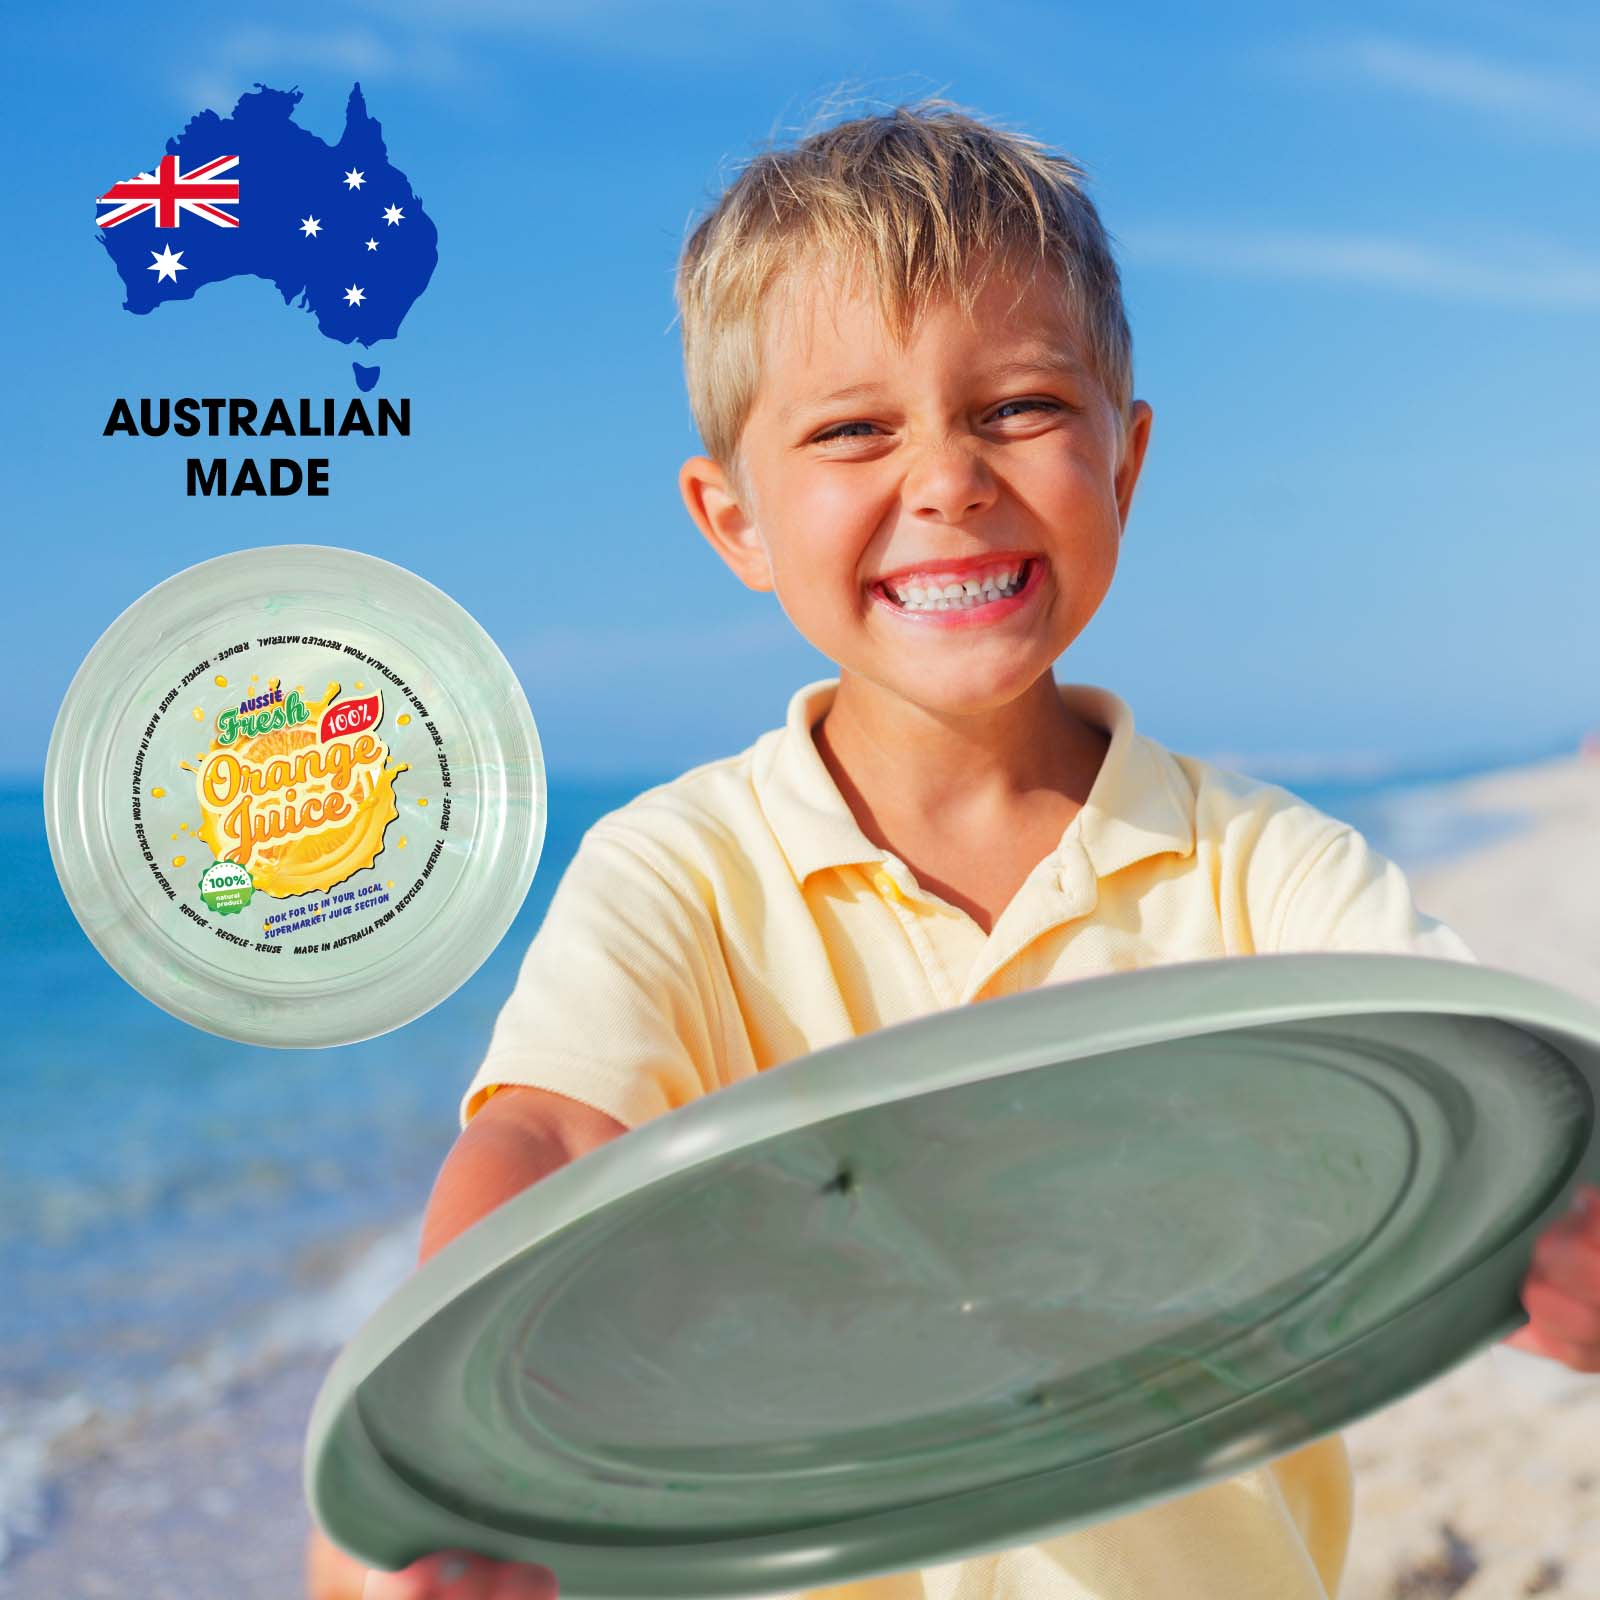 australianmade promotionalproducts